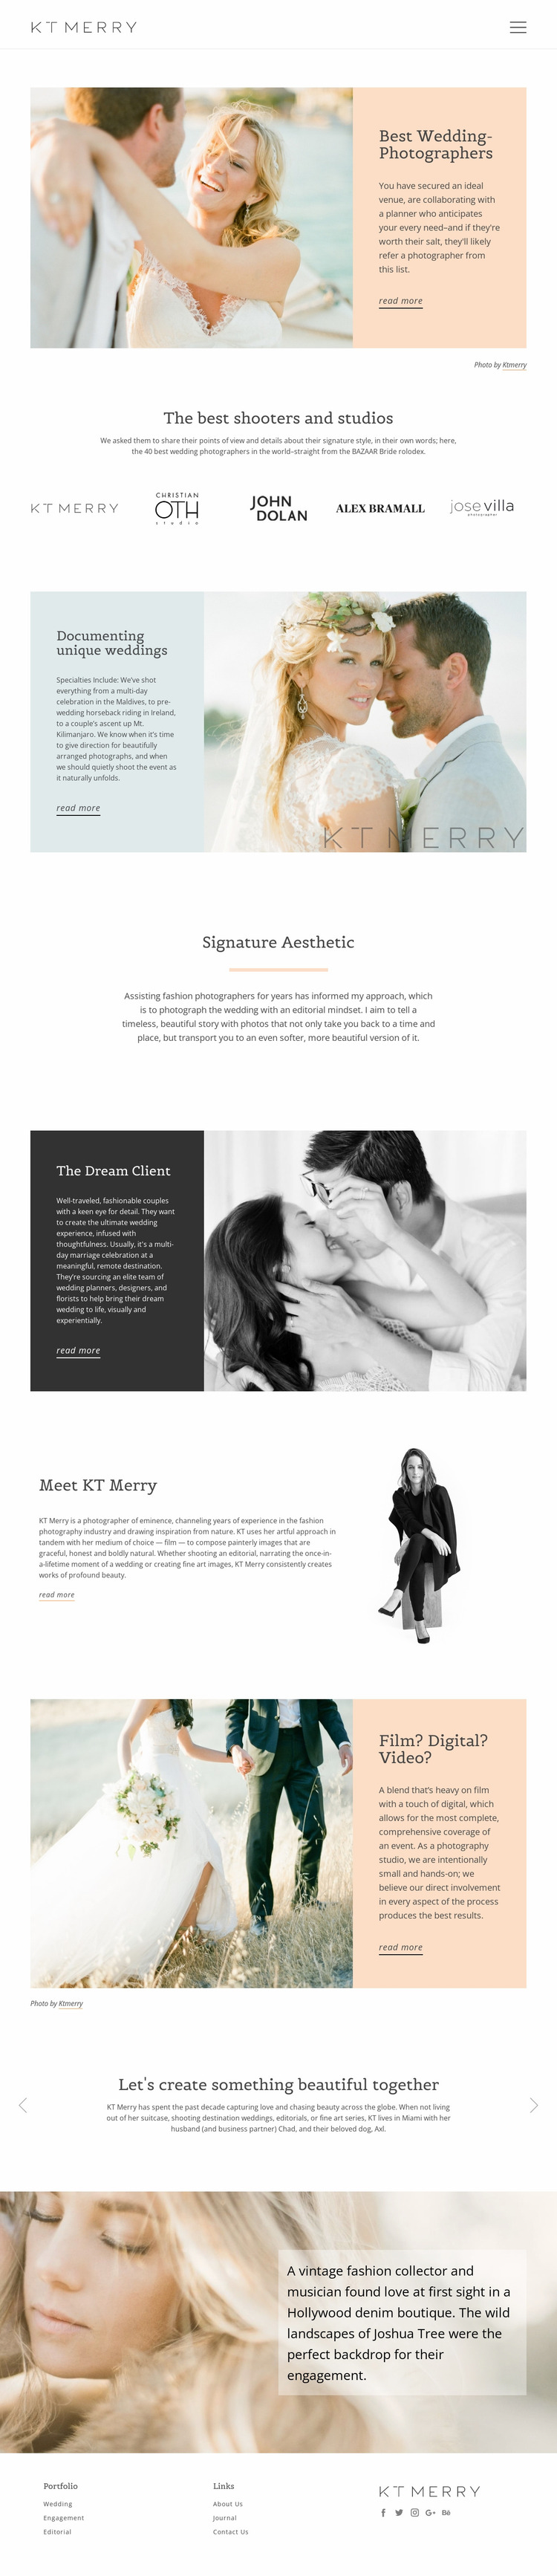 Shooters for special wedding Website Mockup